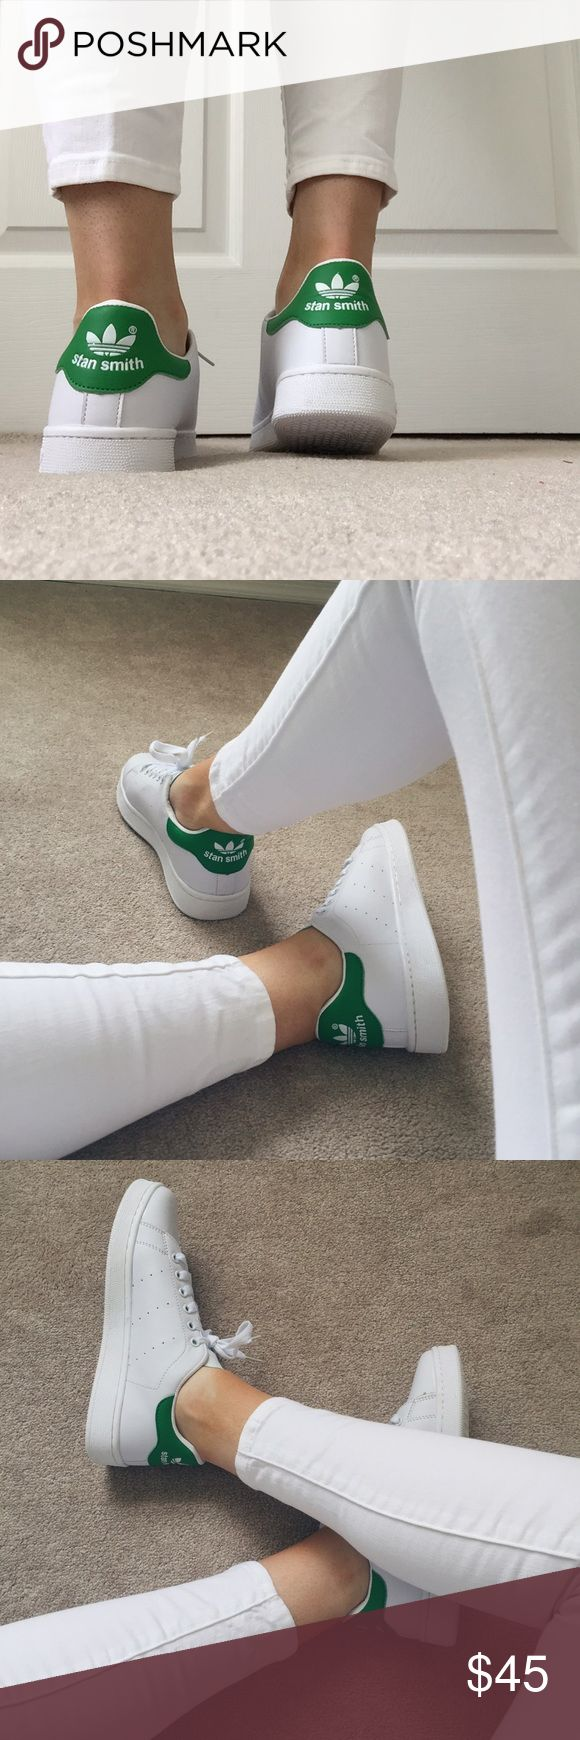 Women's Stan smith Adidas sneakers White/green Stan Smith Adidas sneakers (replica), never worn adidas Shoes Sneakers